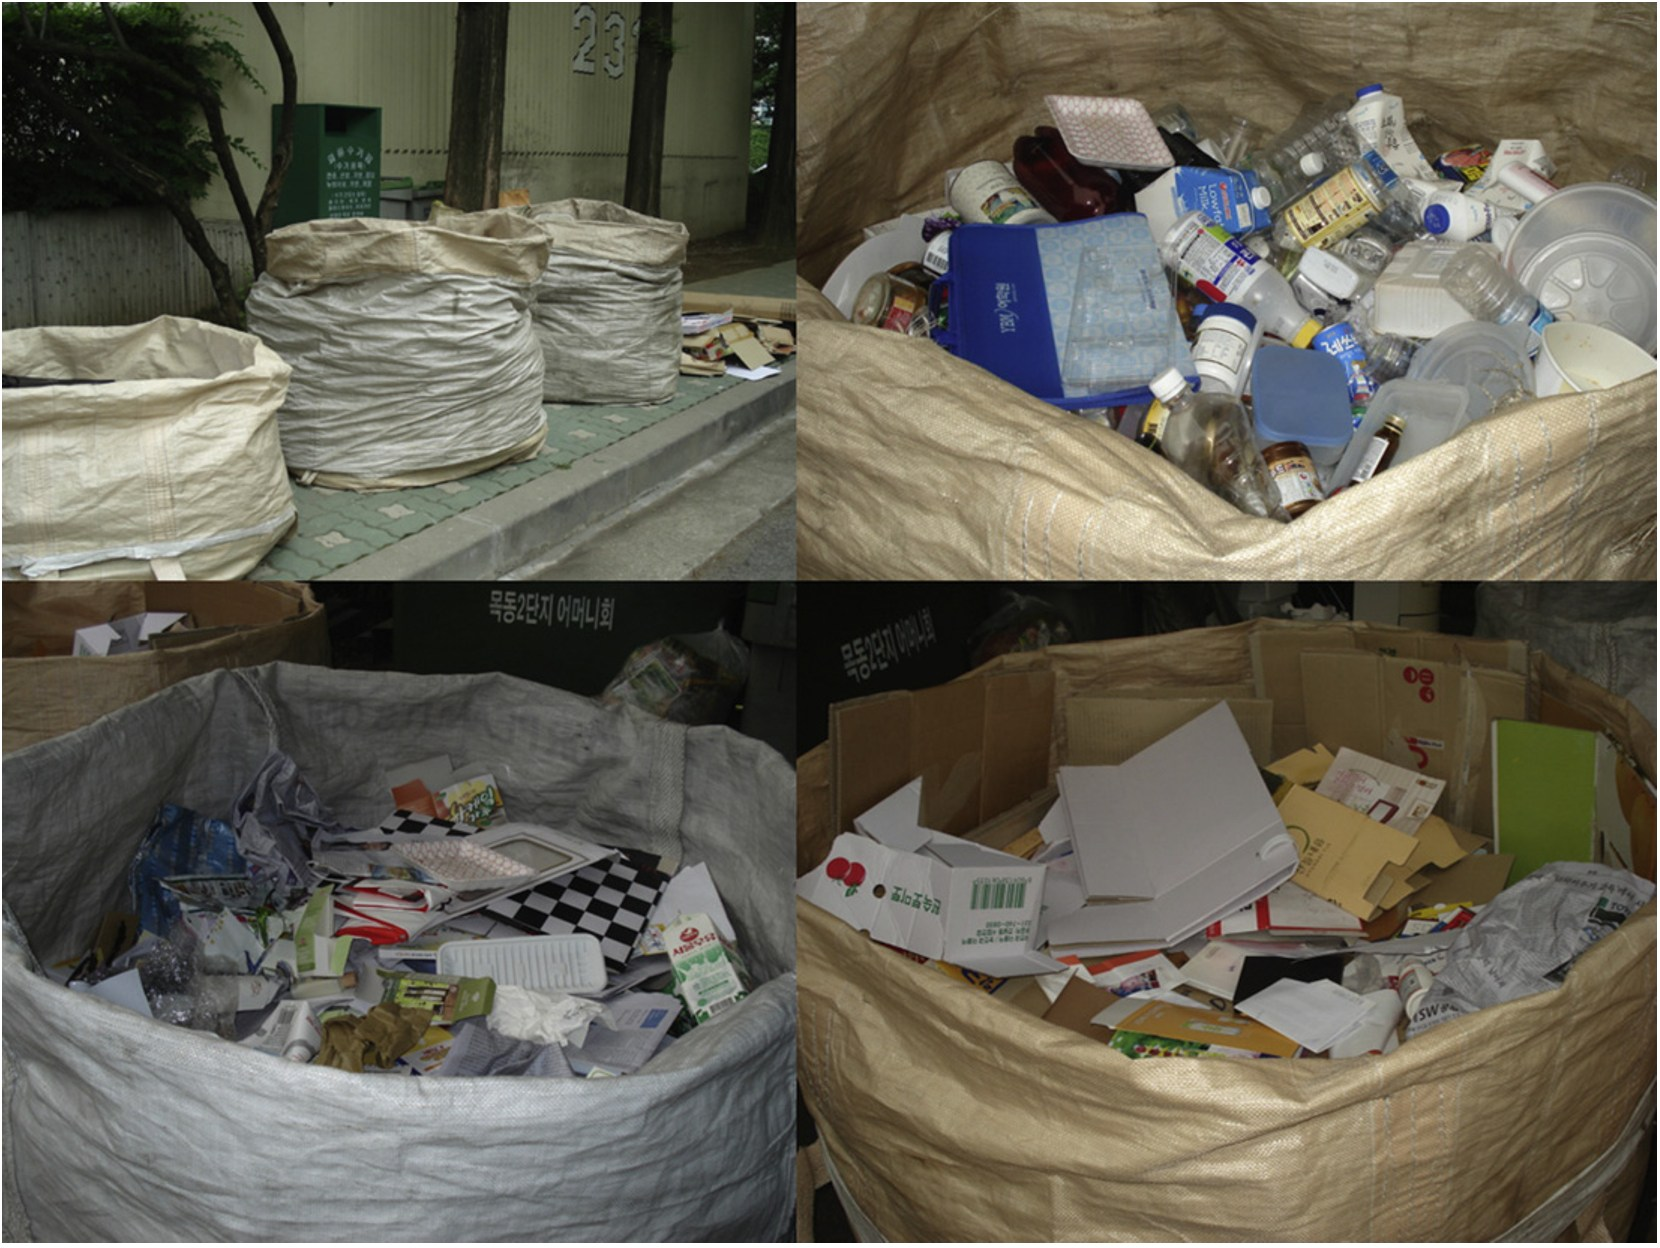 PDF] Korean household waste management and recycling